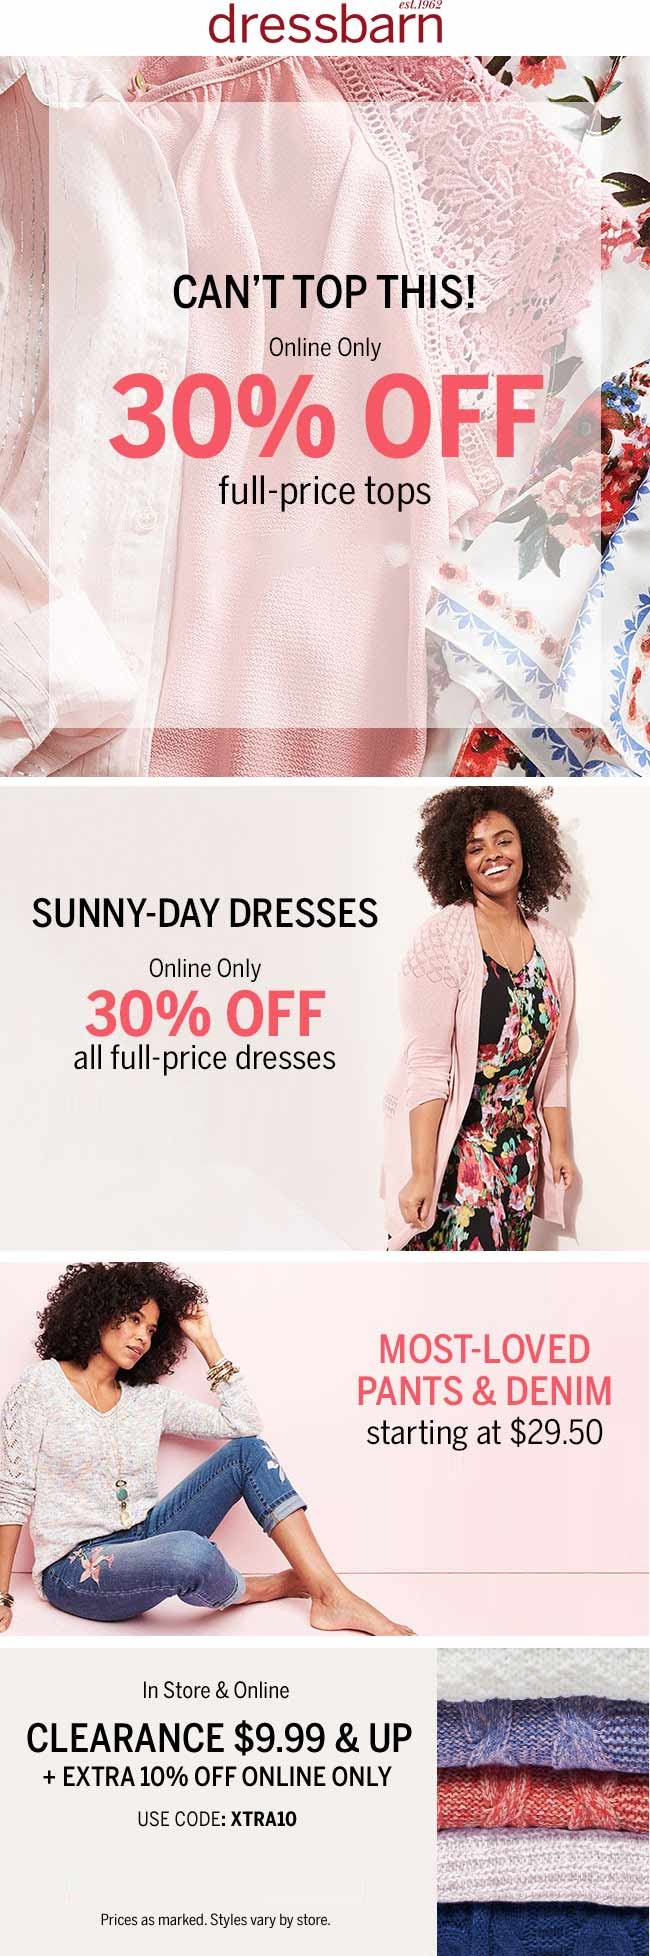 Dressbarn.com Promo Coupon 30% off tops online at Dressbarn, no code needed